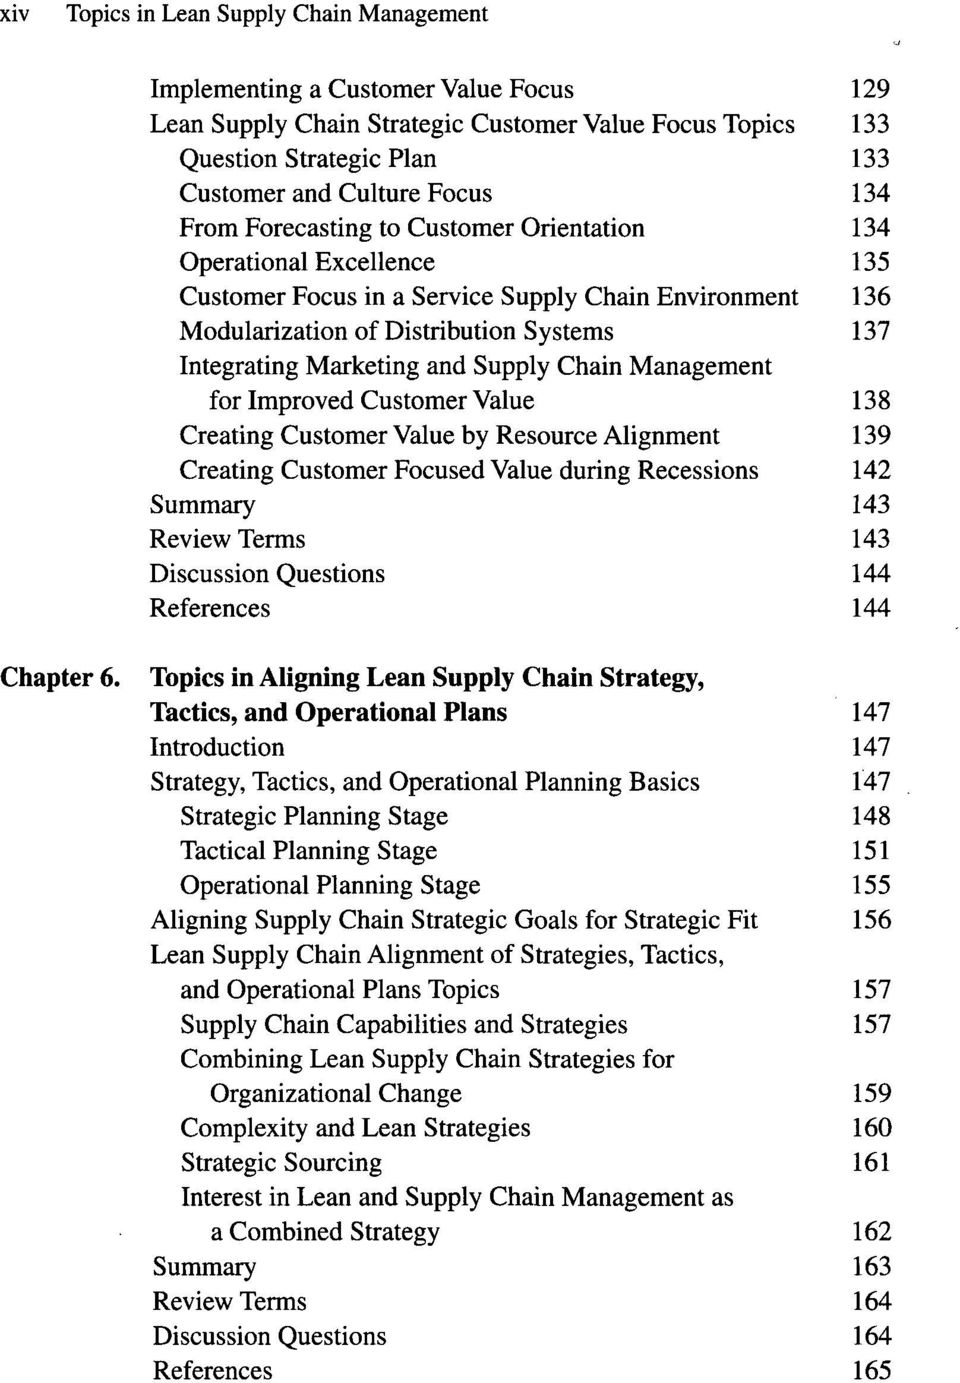 Improved Customer Value 138 Creating Customer Value by Resource Alignment 139 Creating Customer Focused Value during Recessions 142 Summary 143 Review Terms 143 Discussion Questions 144 References